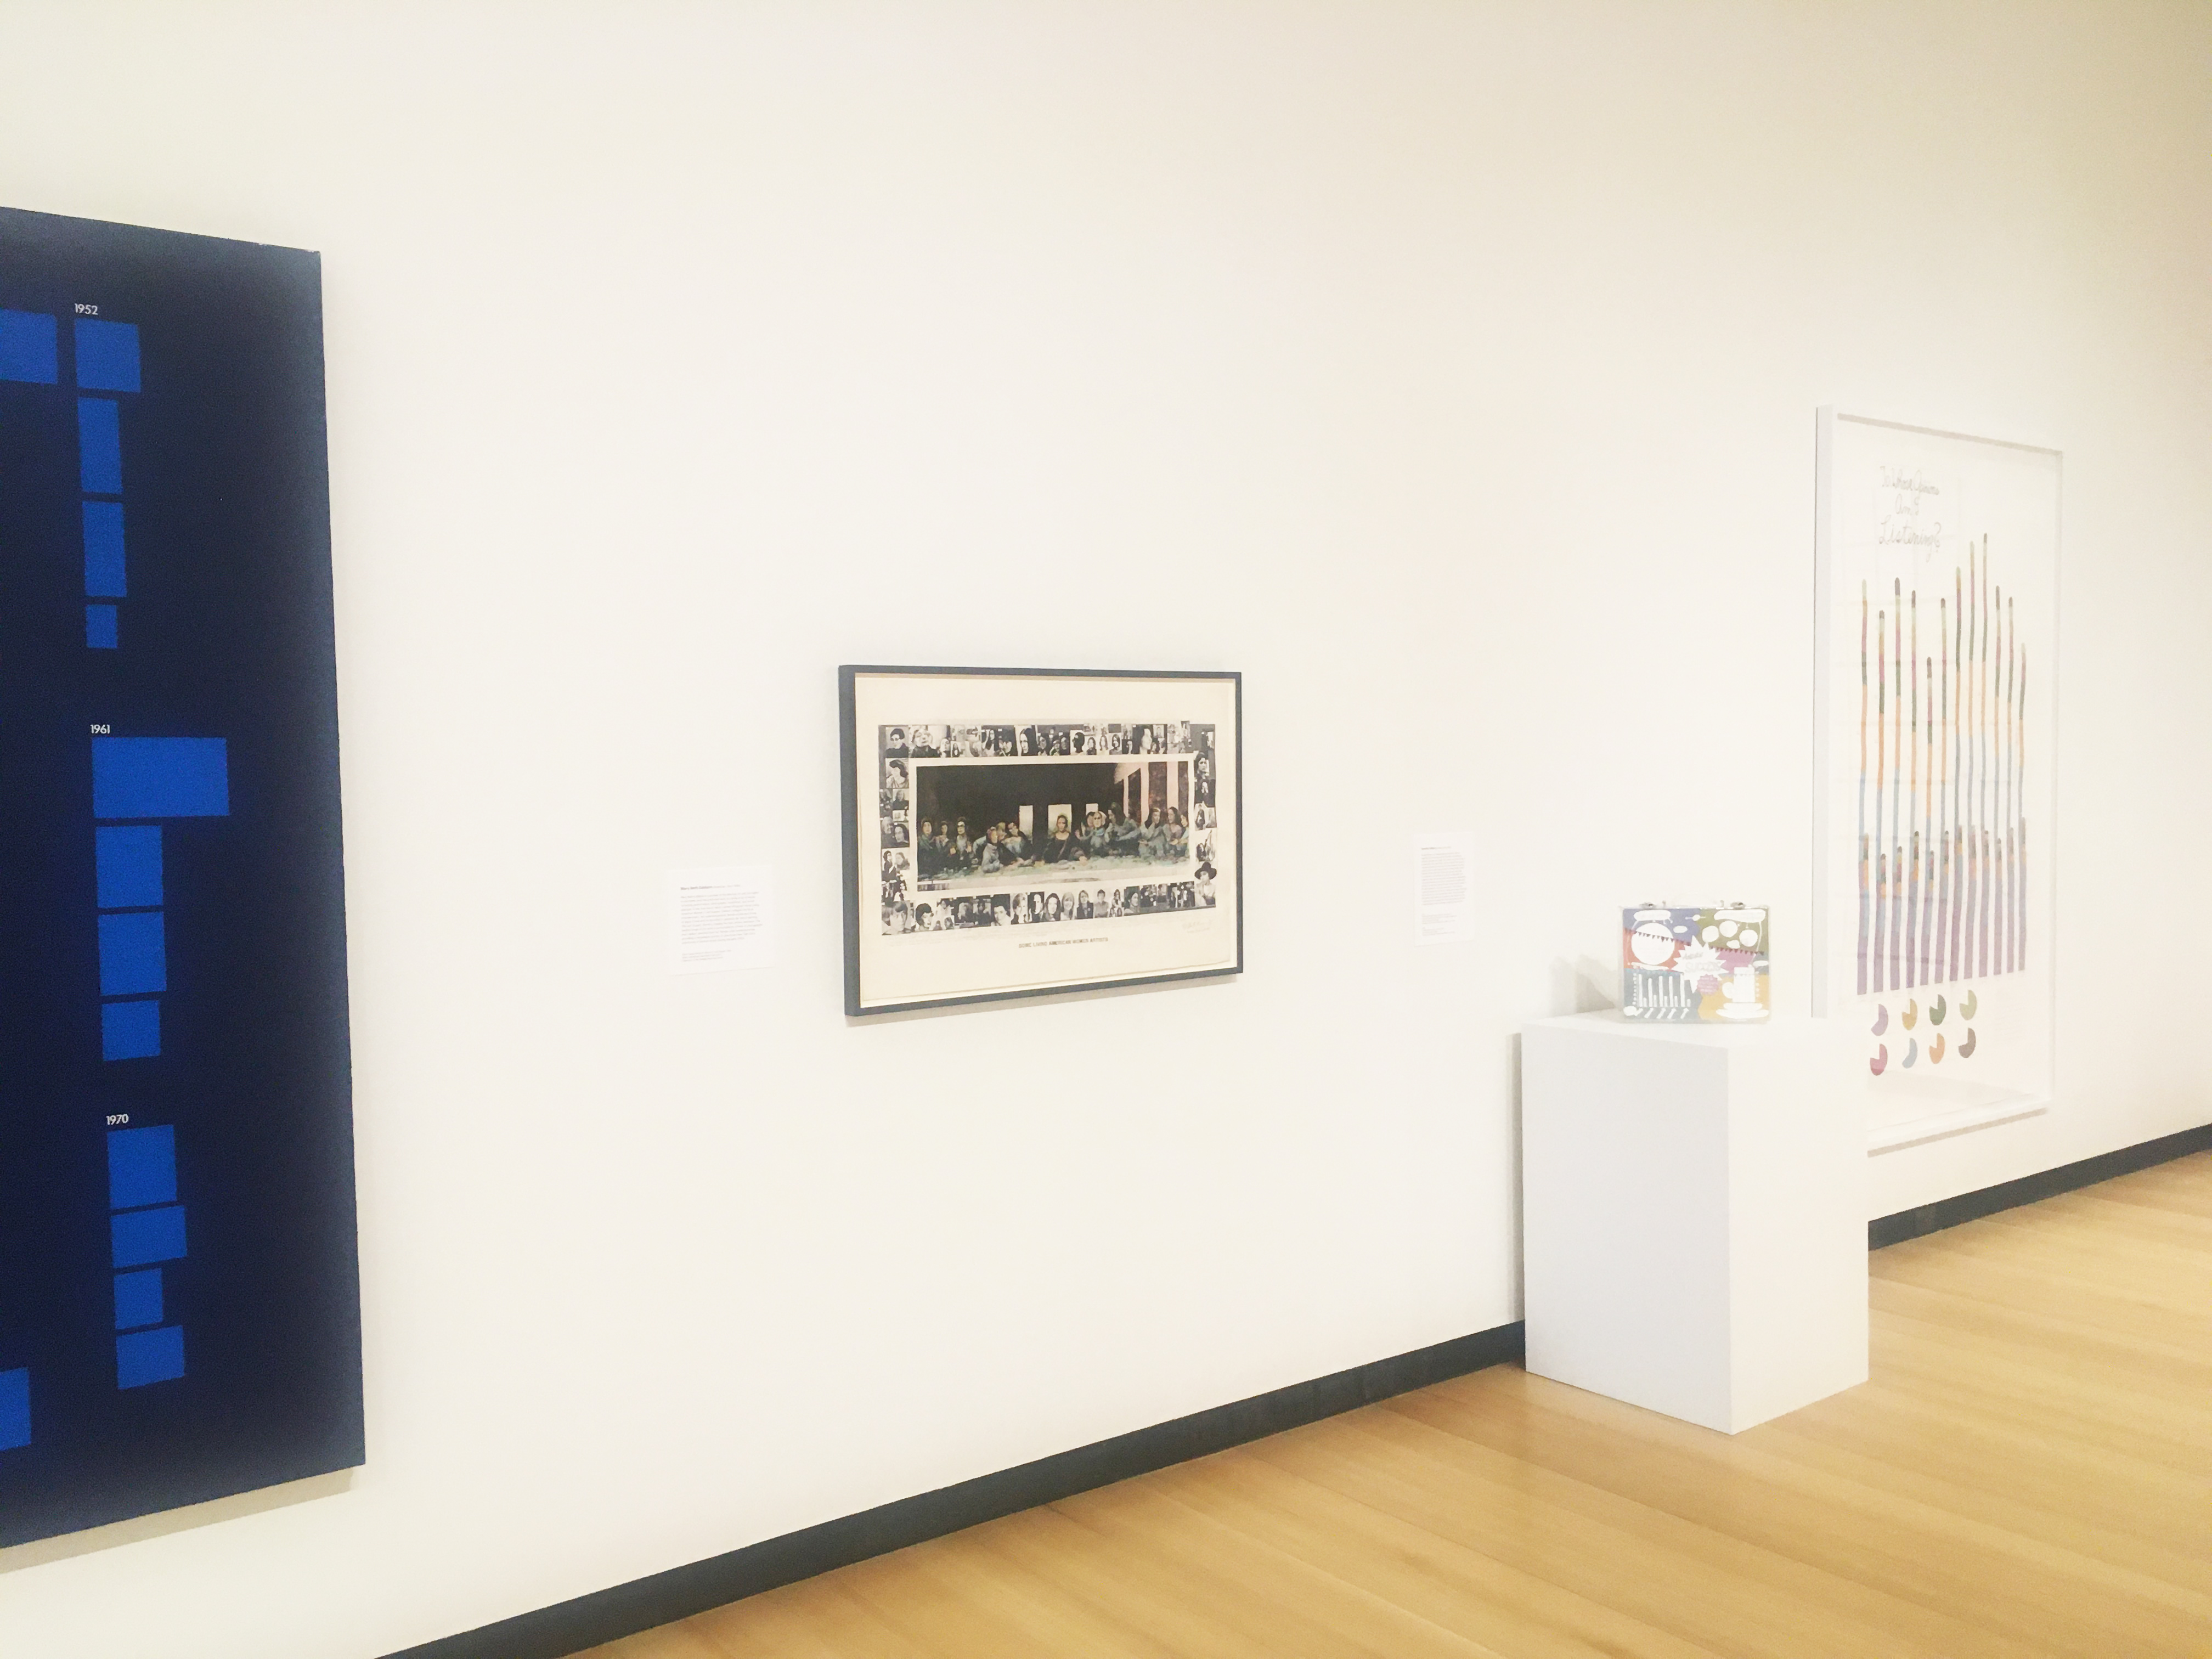 SUM Artists: Visual Diagrams and Systems-Based Explorations - Ruth and Elmer Wellin Museum of Art